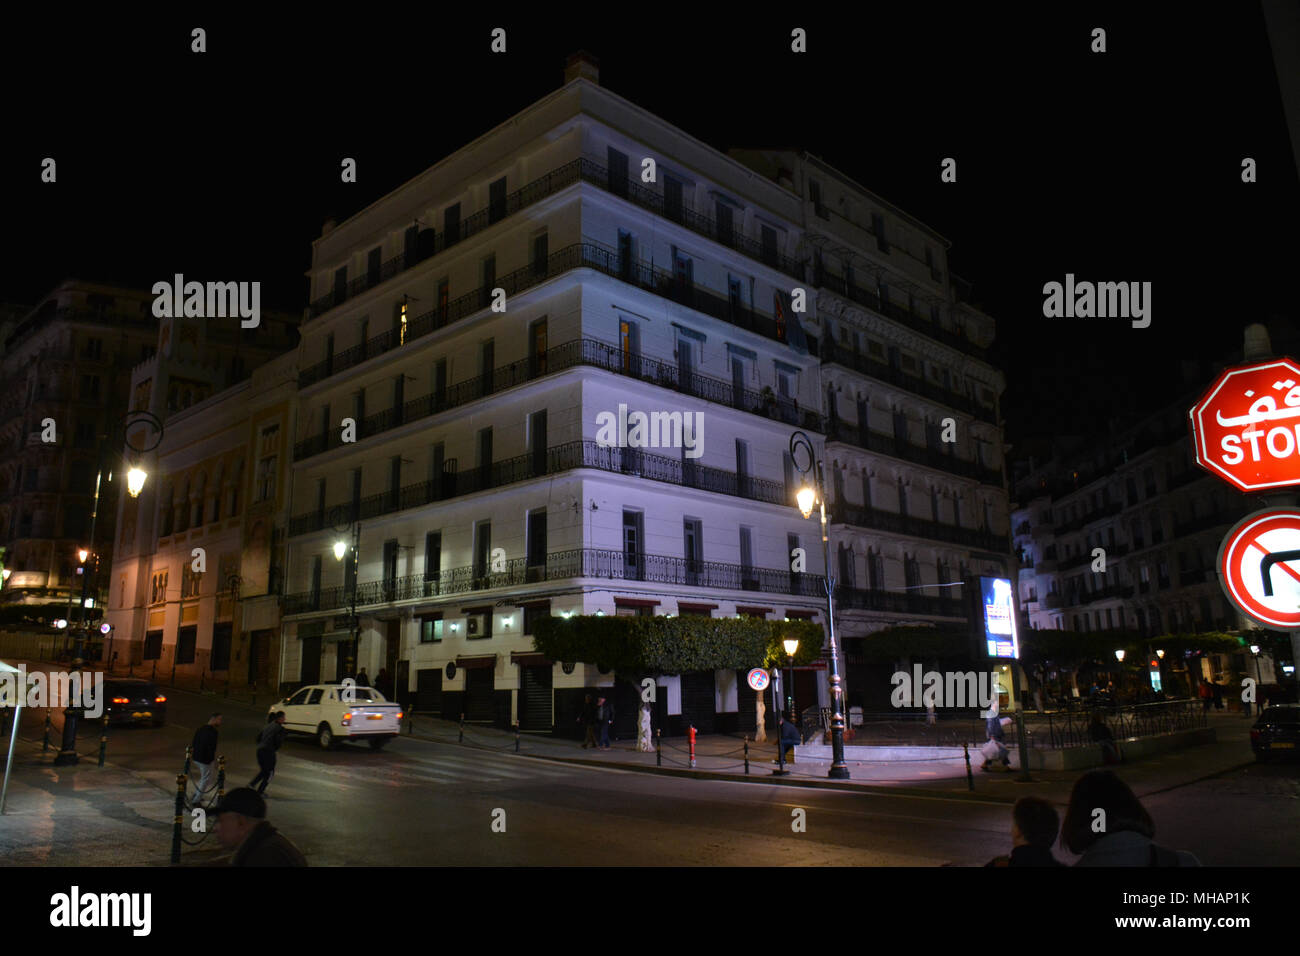 City of Algier in the night. - Stock Image